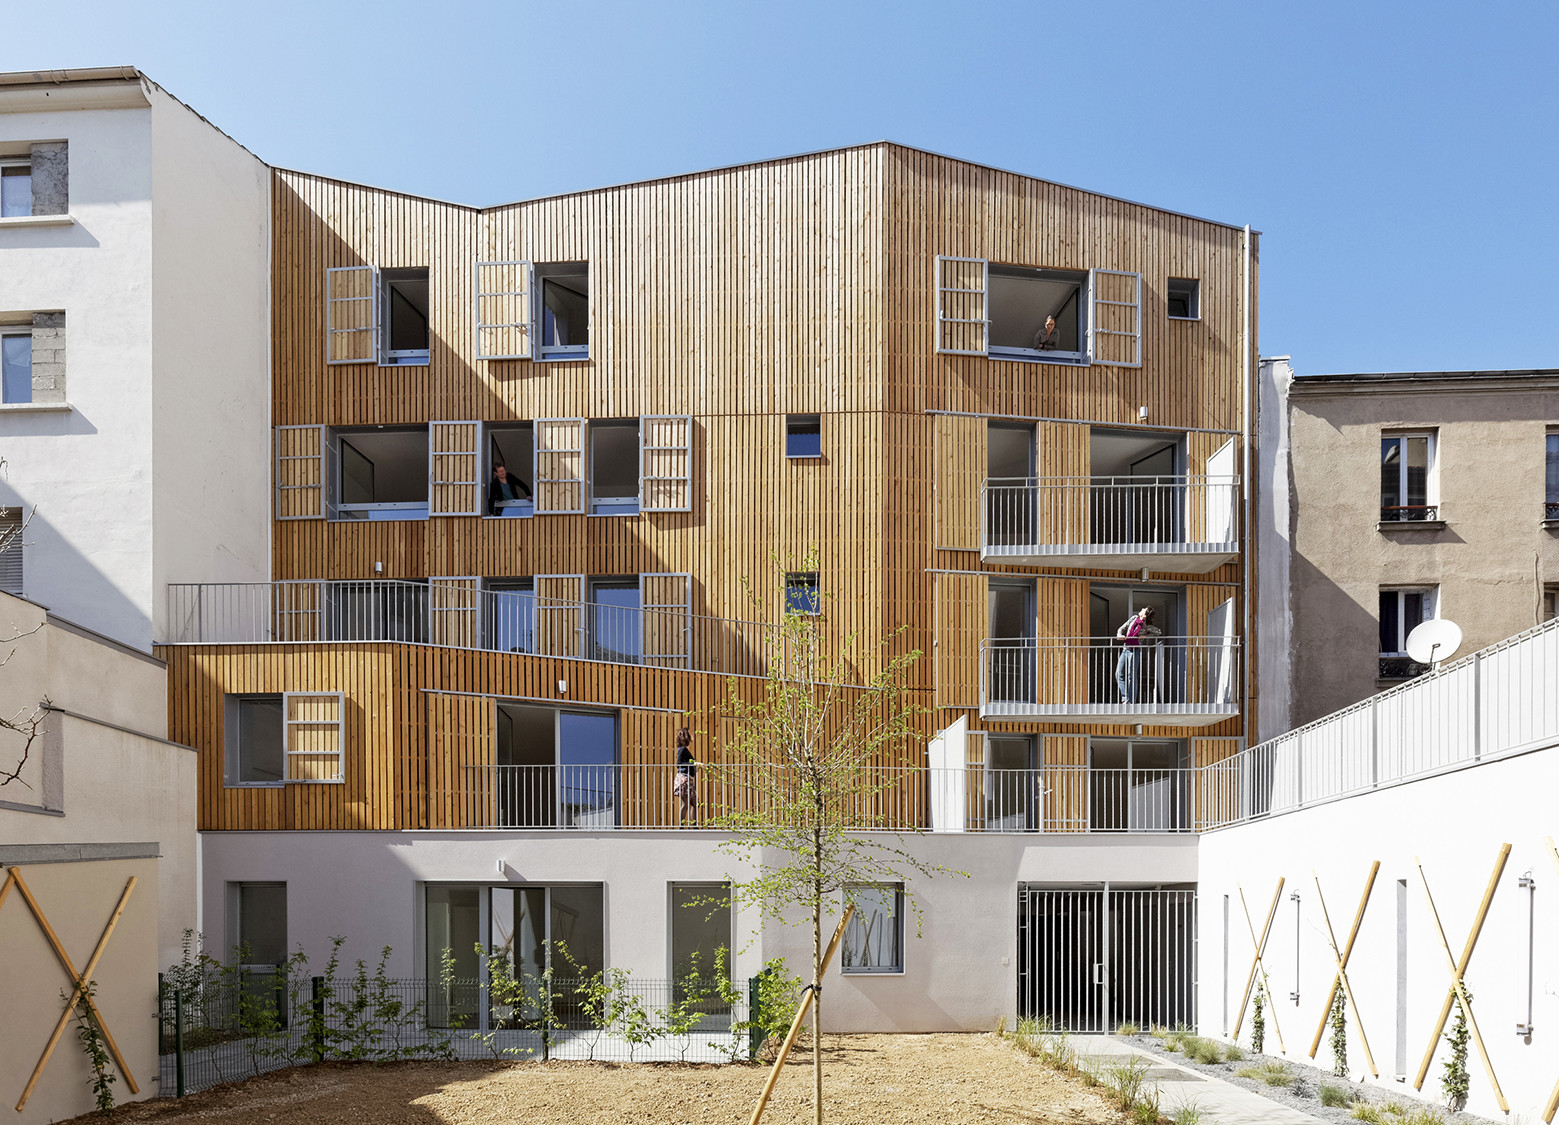 8 Housing in Patin / Benjamin Fleury, © David Boureau